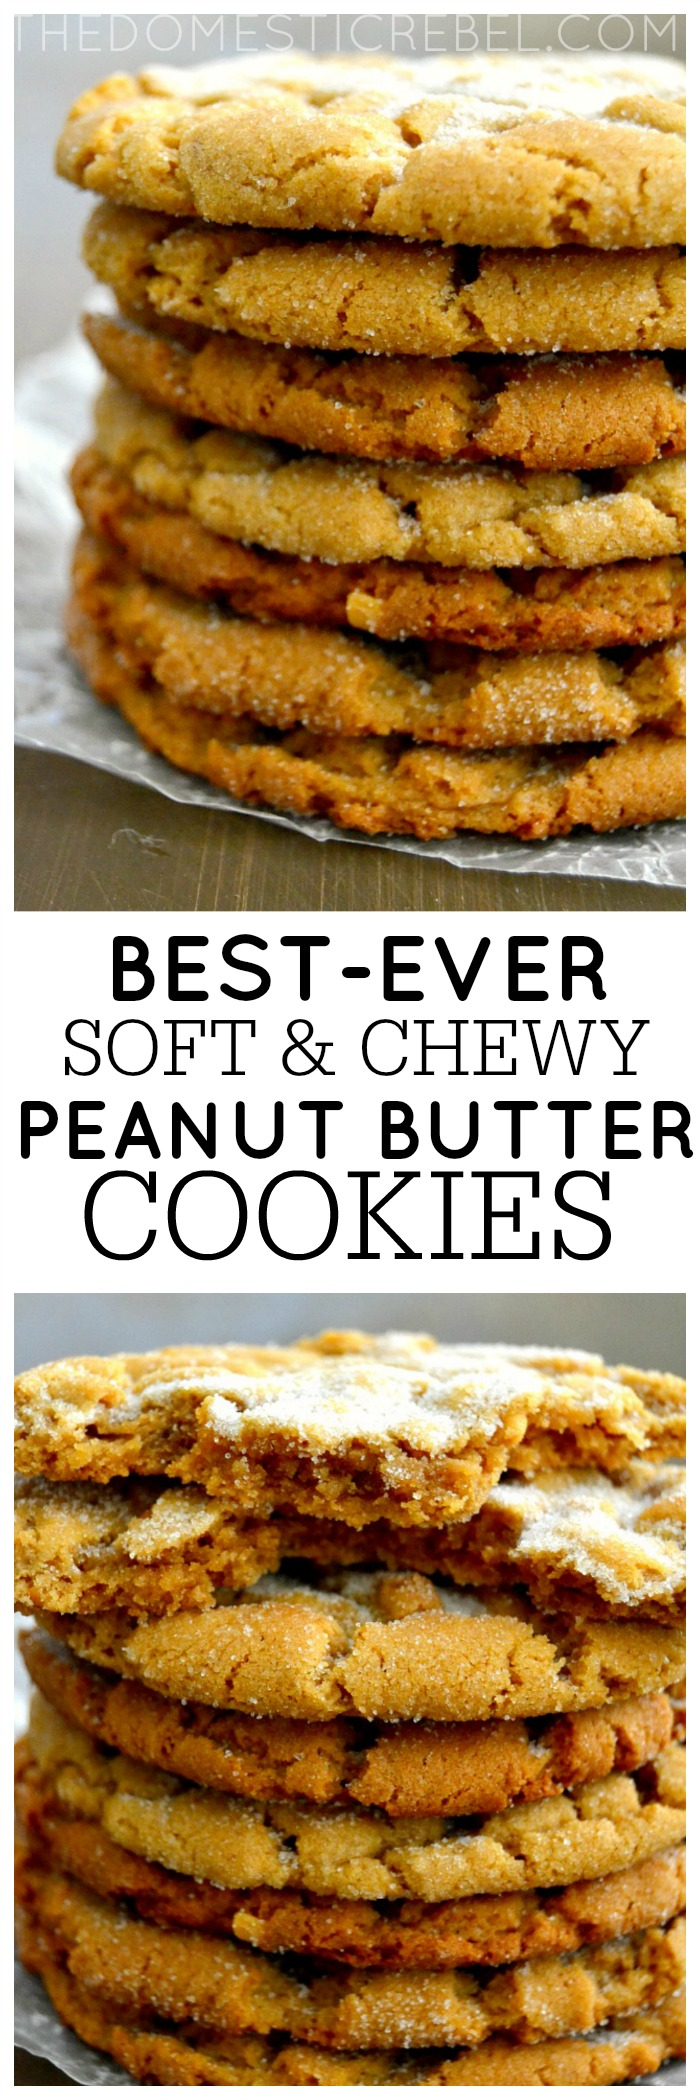 The Best Crisp and Chewy Peanut Butter Cookies {Gluten-Free!} | The ...